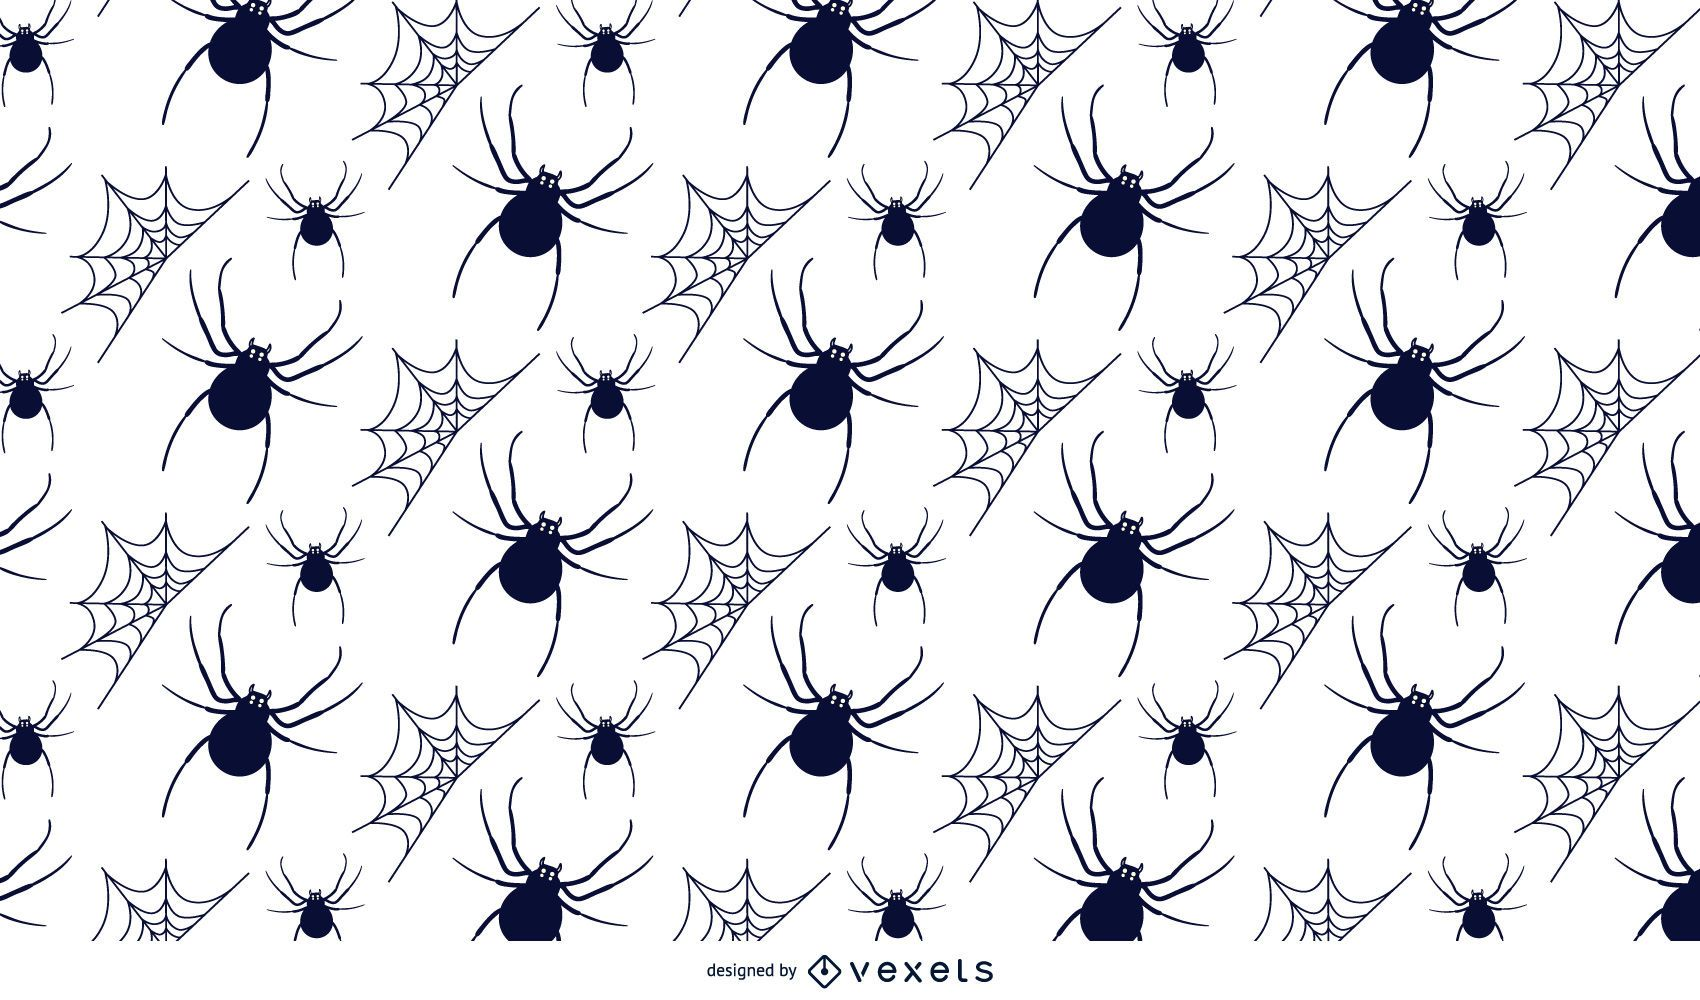 Spiders and webs Halloween illustrated pattern